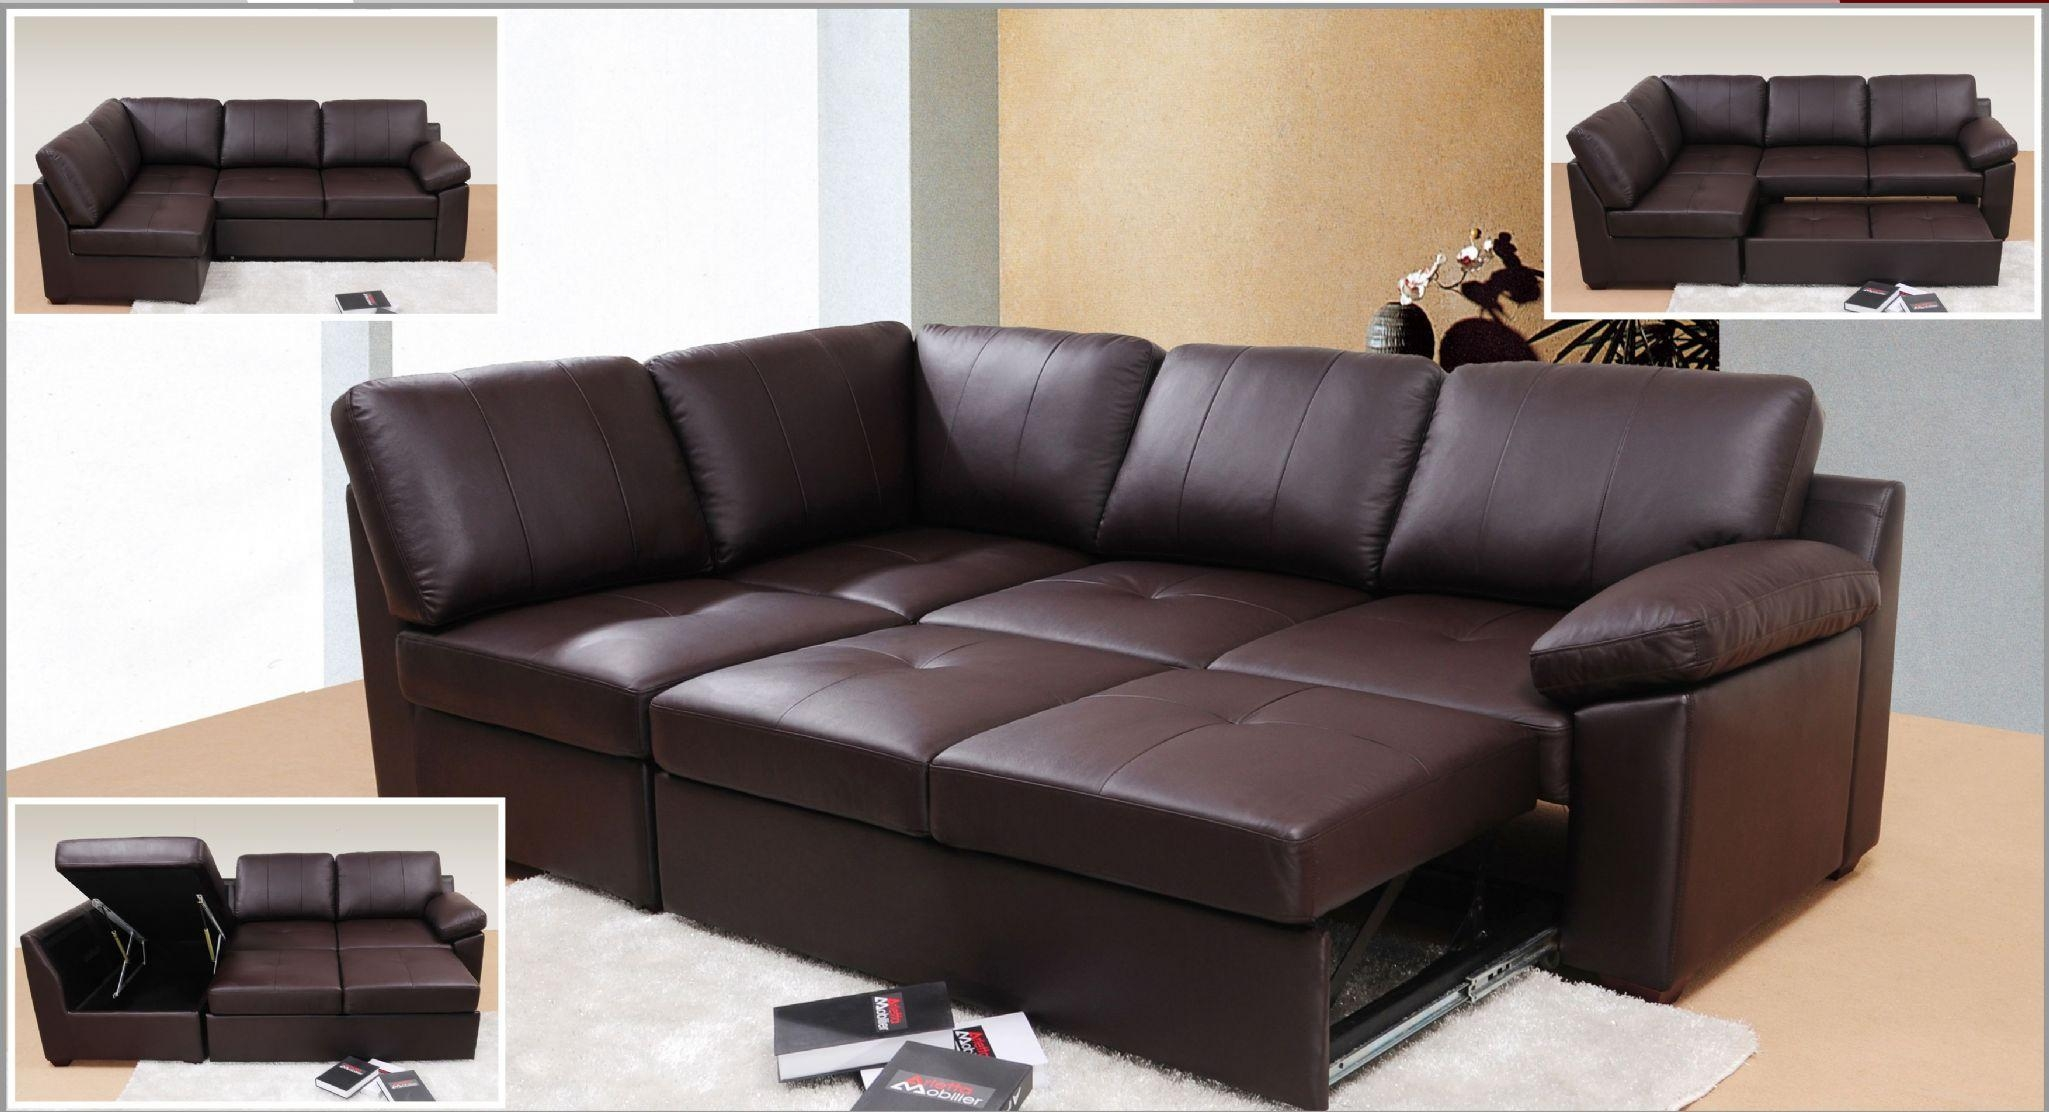 Corner Unit Sofa Beds With Storage   Centerfieldbar Intended For Sofa Corner Units (Image 3 of 24)